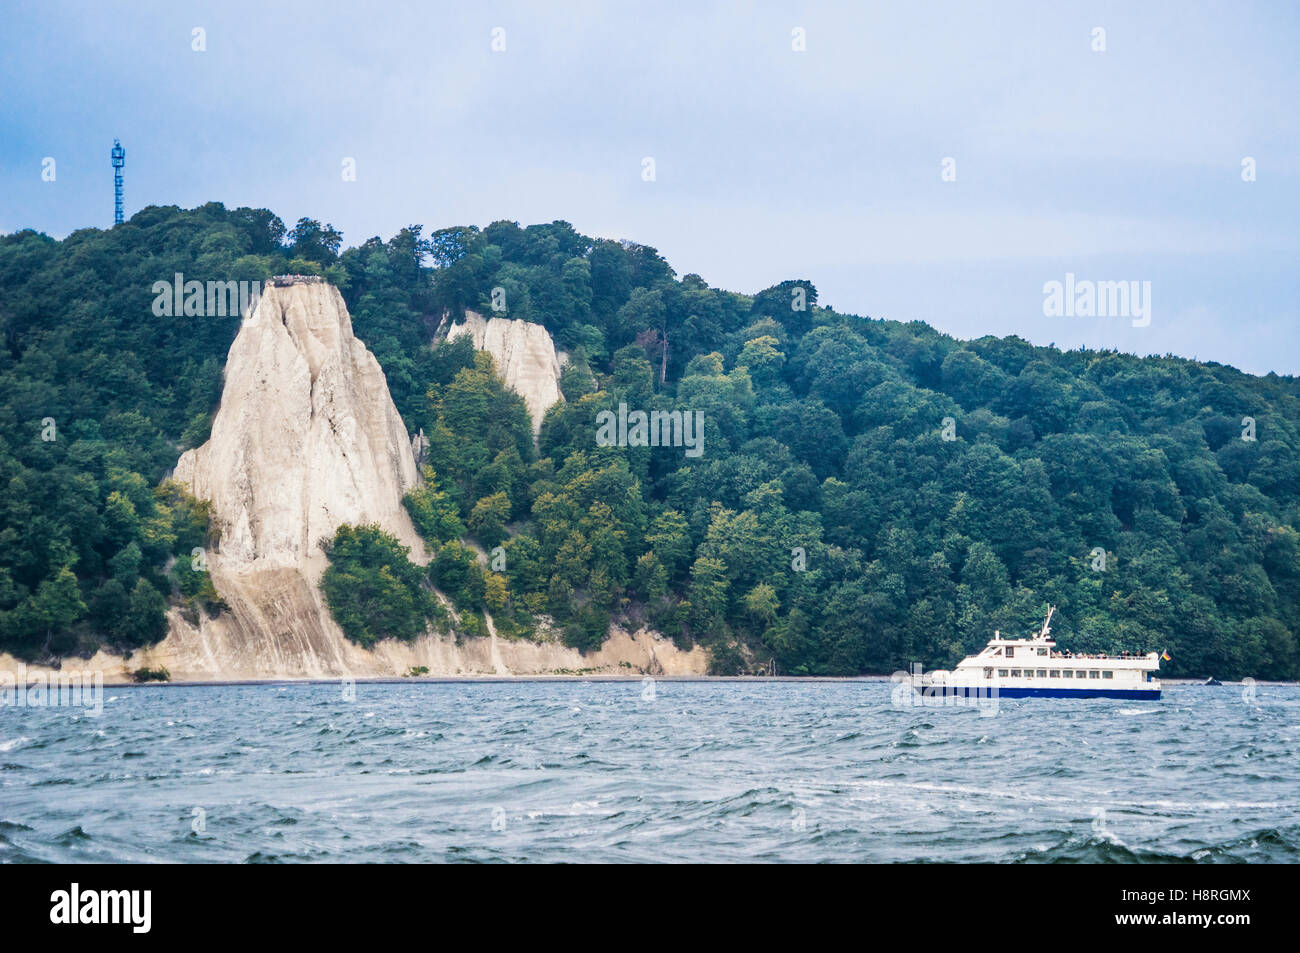 view of the impressive Königsstuhl (King's Chair) cliff face seen from the Baltic Sea, Mecklenburg Vorpommern, - Stock Image